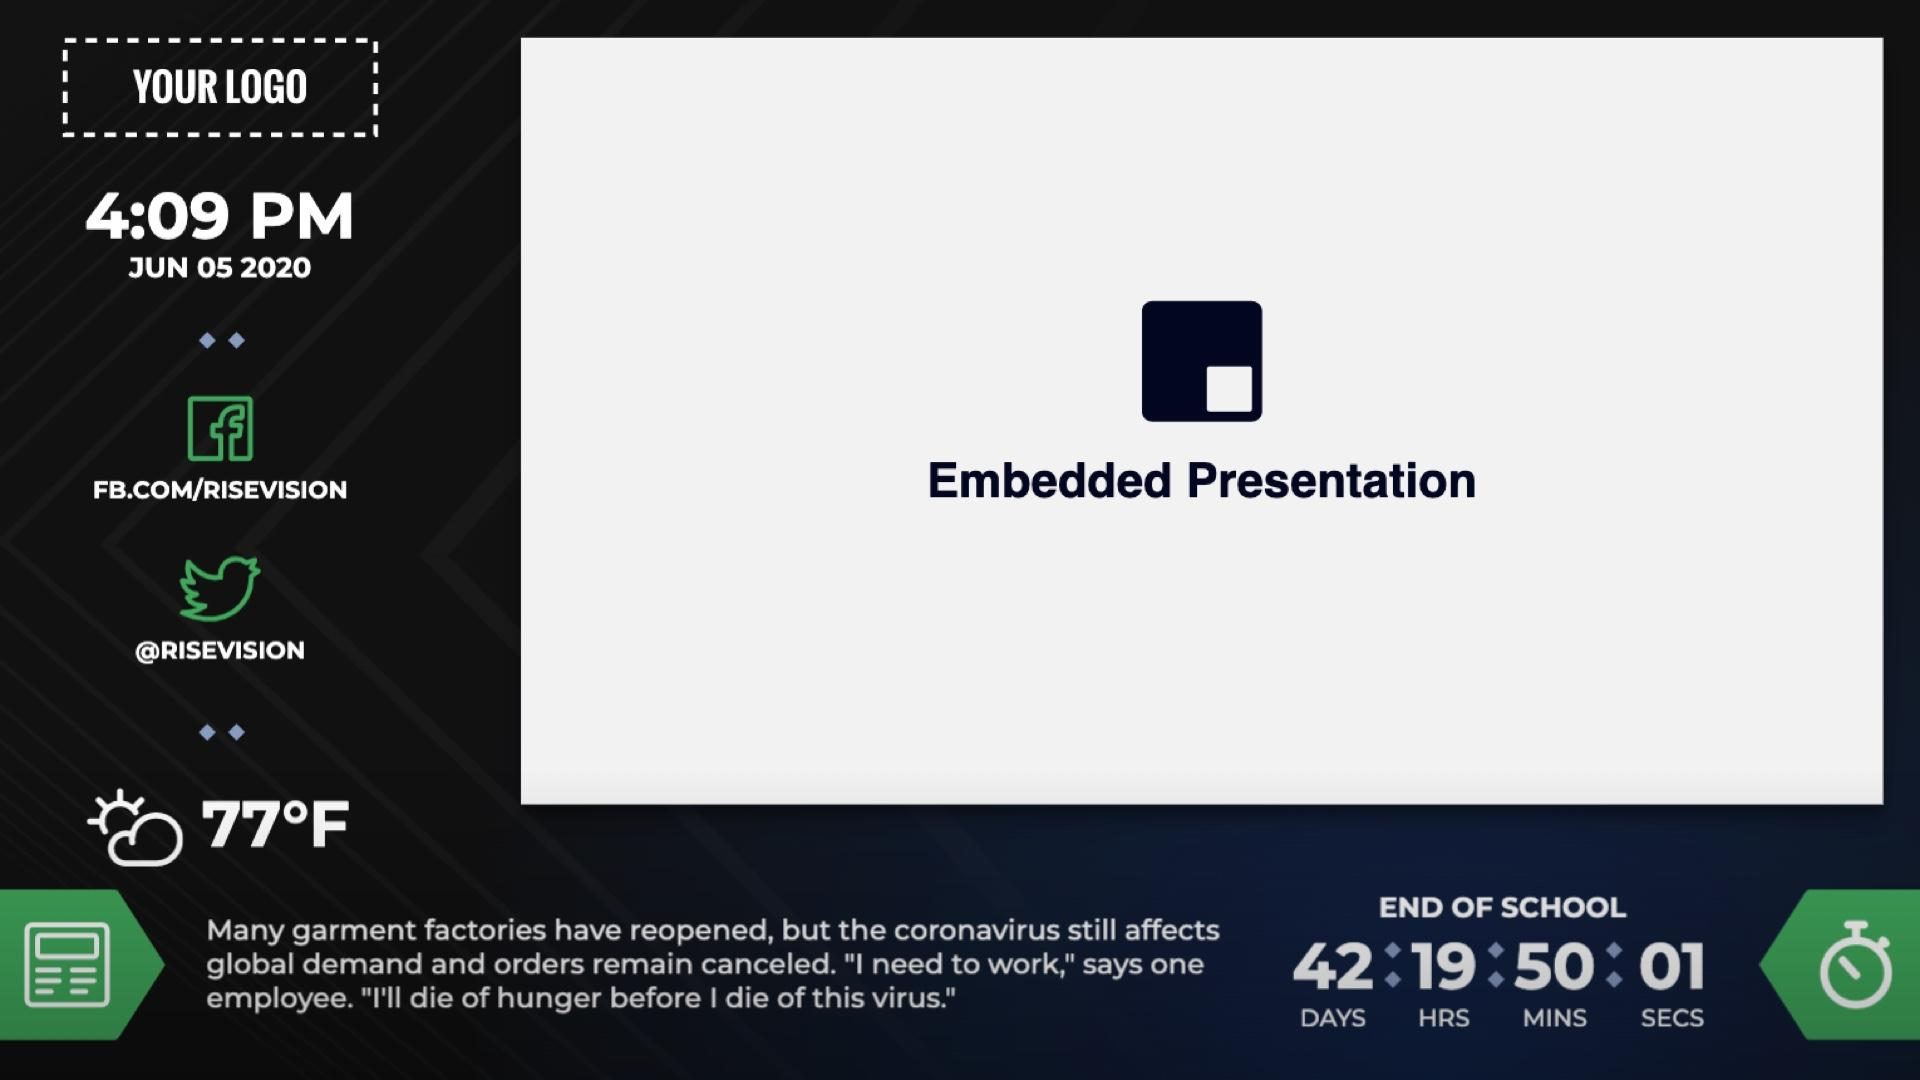 Zoned Countdown Embedded Presentation Digital Signage Template